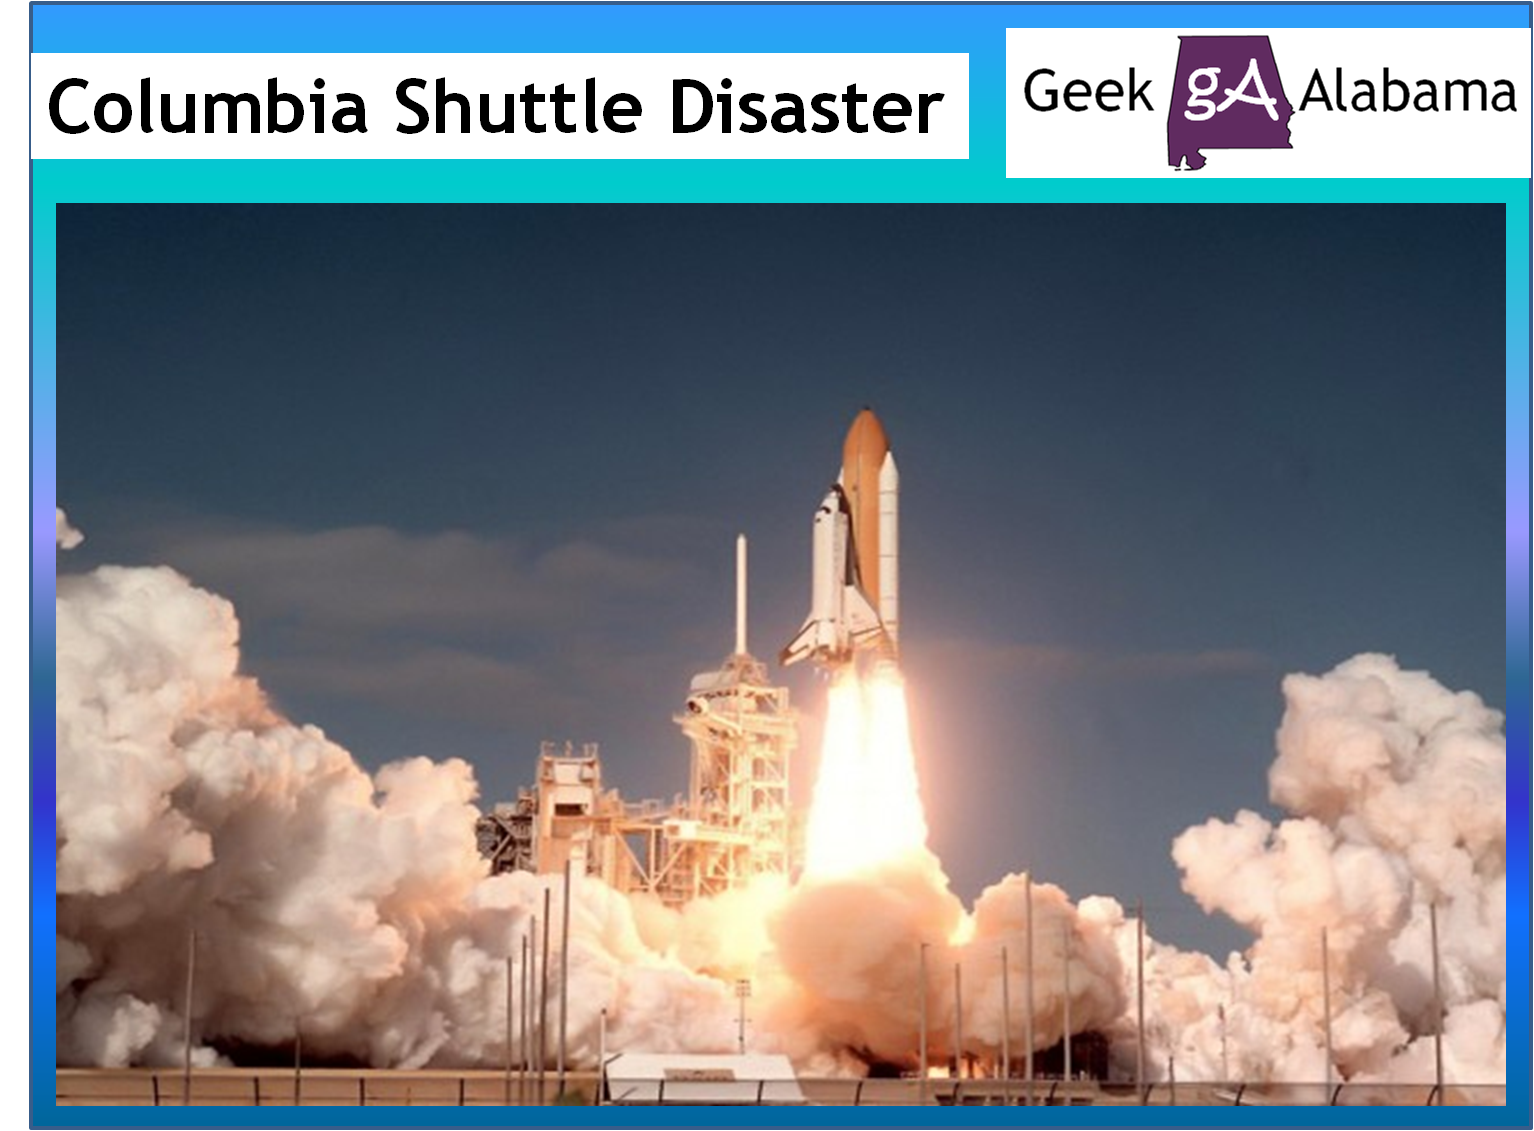 space shuttle columbia disaster site - photo #14